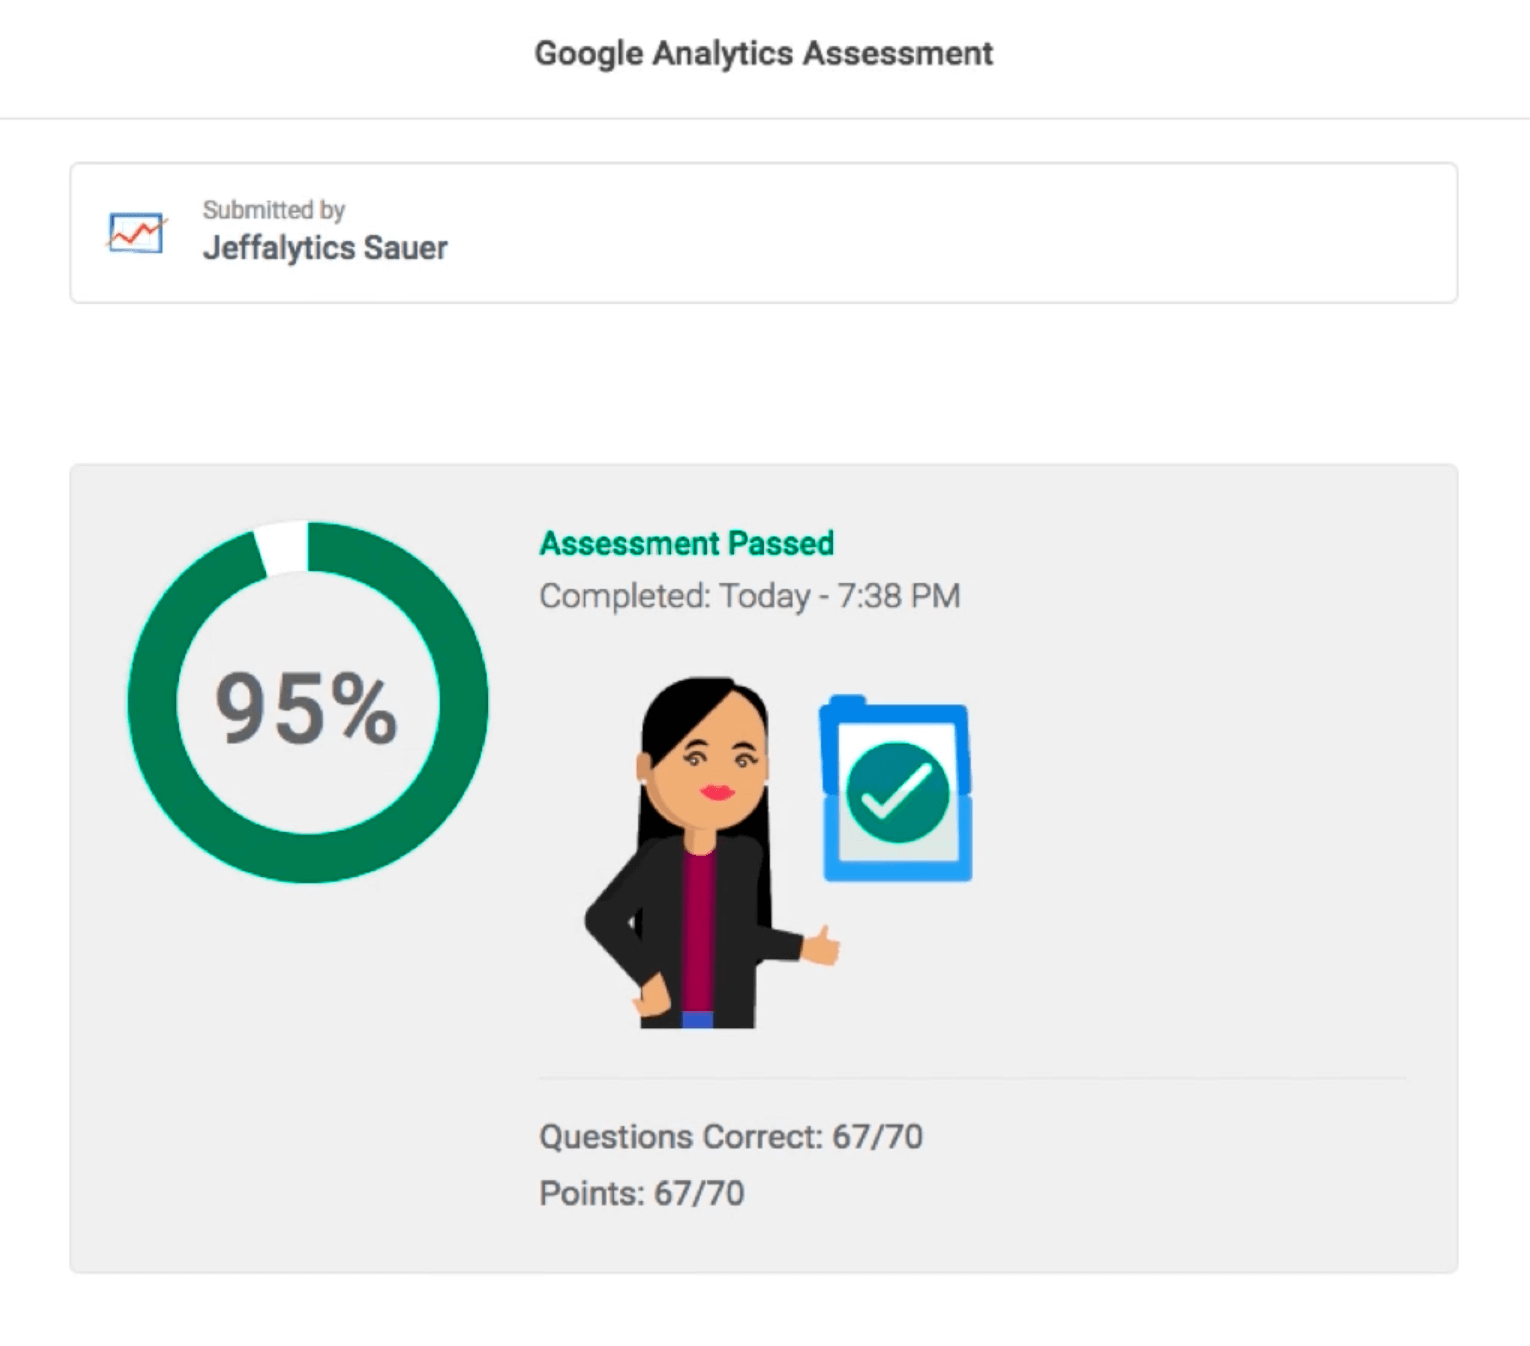 Google Analytics Certification test score